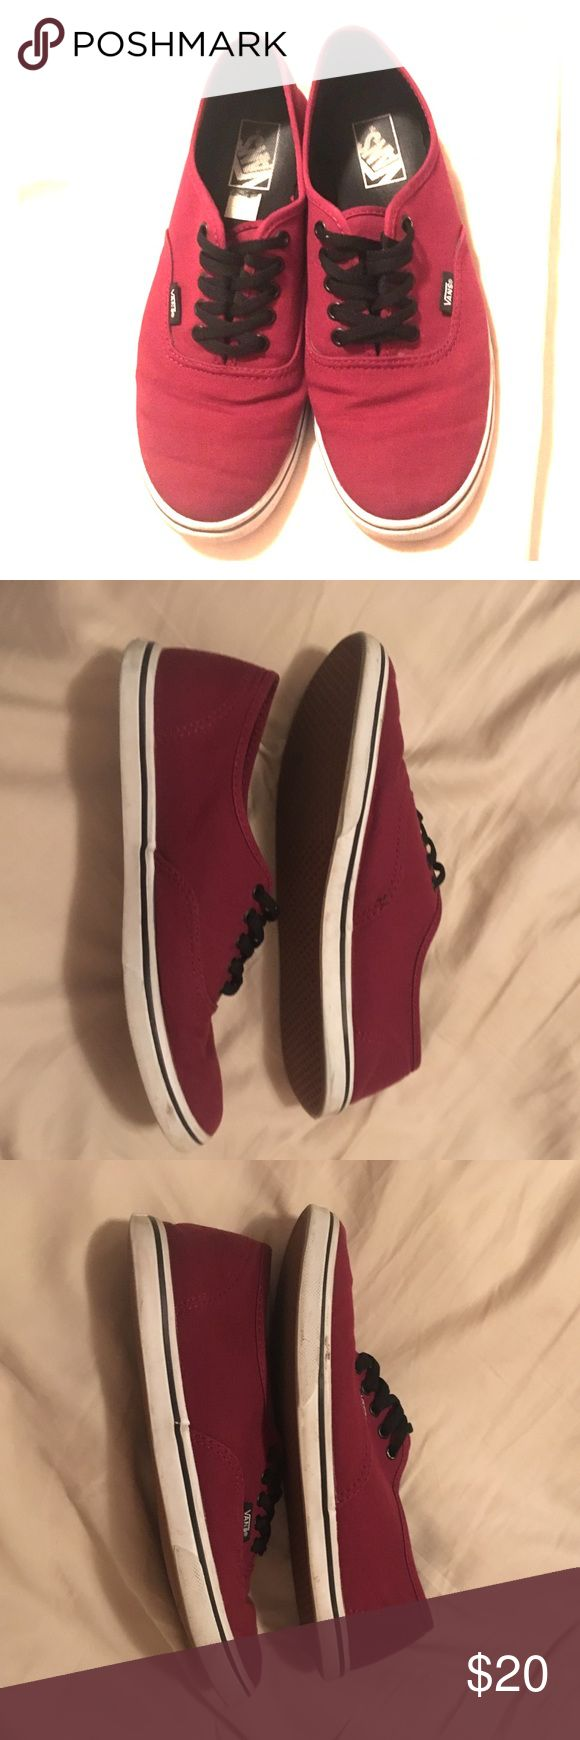 Maroon vans size 7.5 men's 9.0 women's These are maroon vans in size 7.5 men's and 9.0 in women's these are lightly used I loved the color but just didn't wear them. Vans Shoes Sneakers